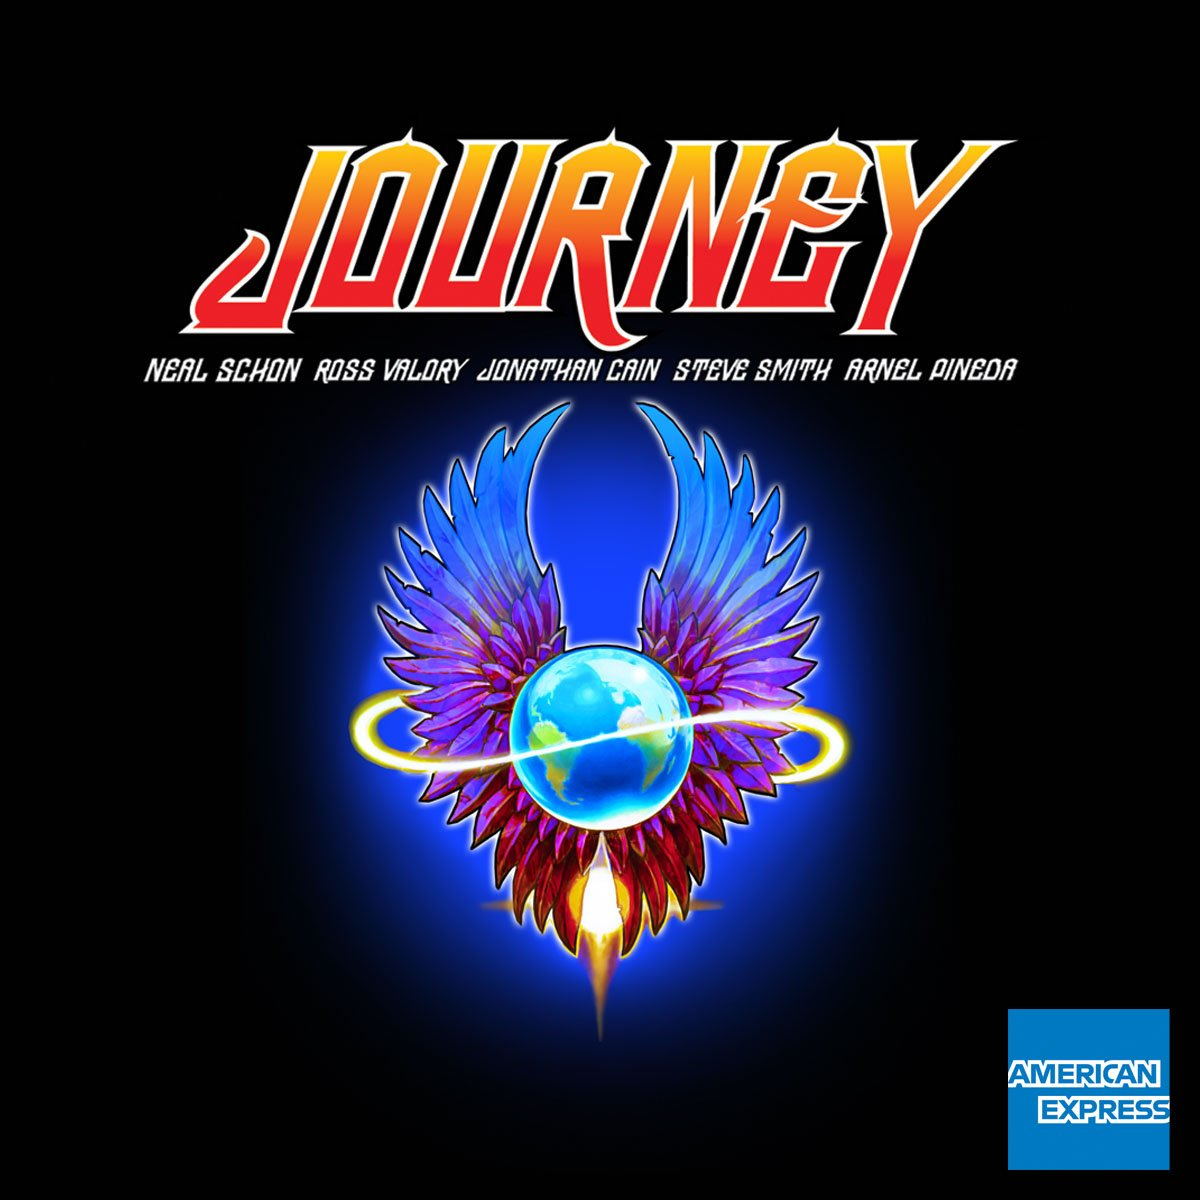 JourneyOfficial photo